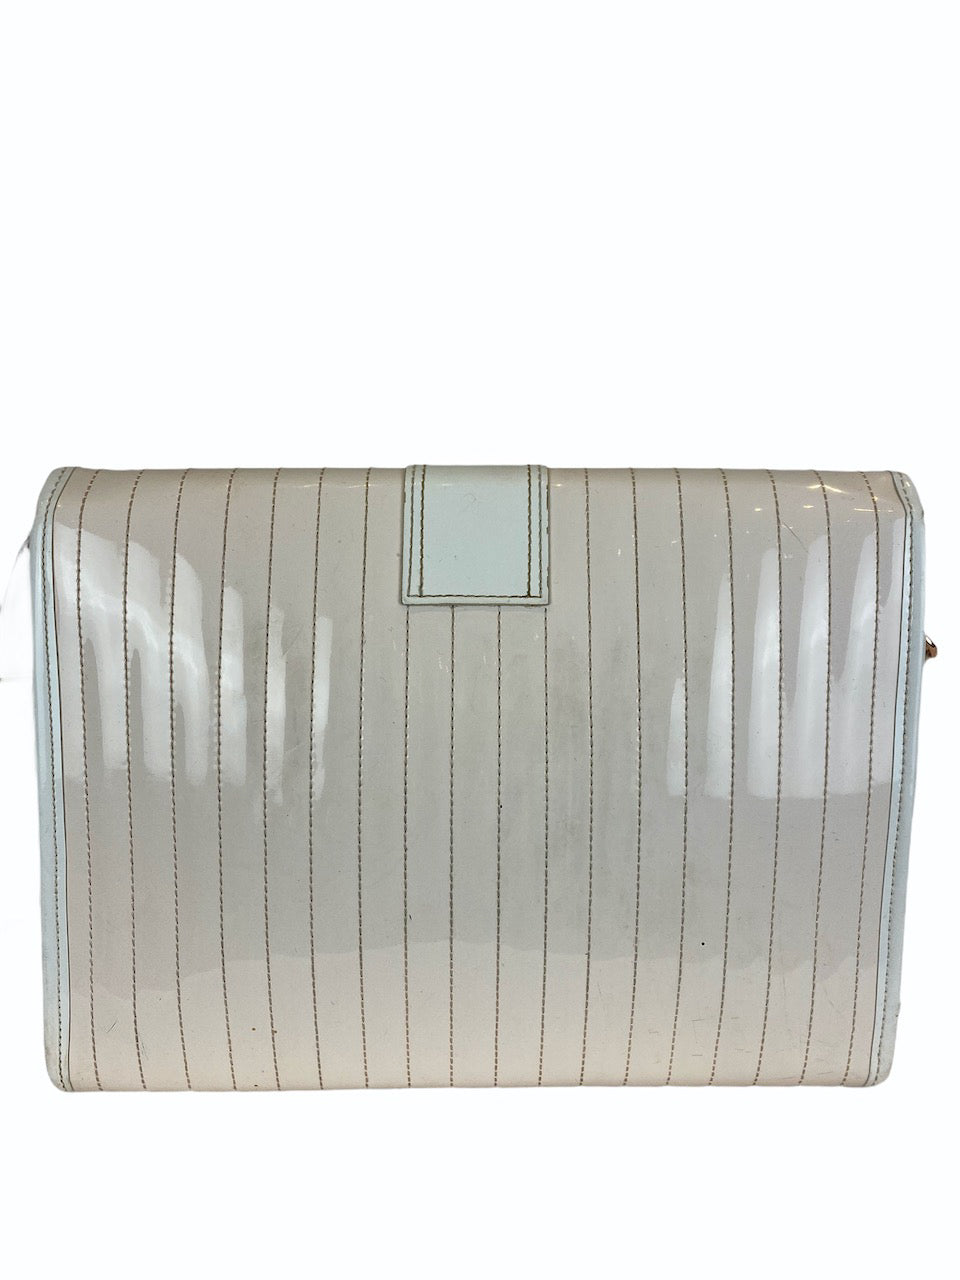 Ted Baker Cream Patent Leather Shoulder Bag - As Seen On Instagram